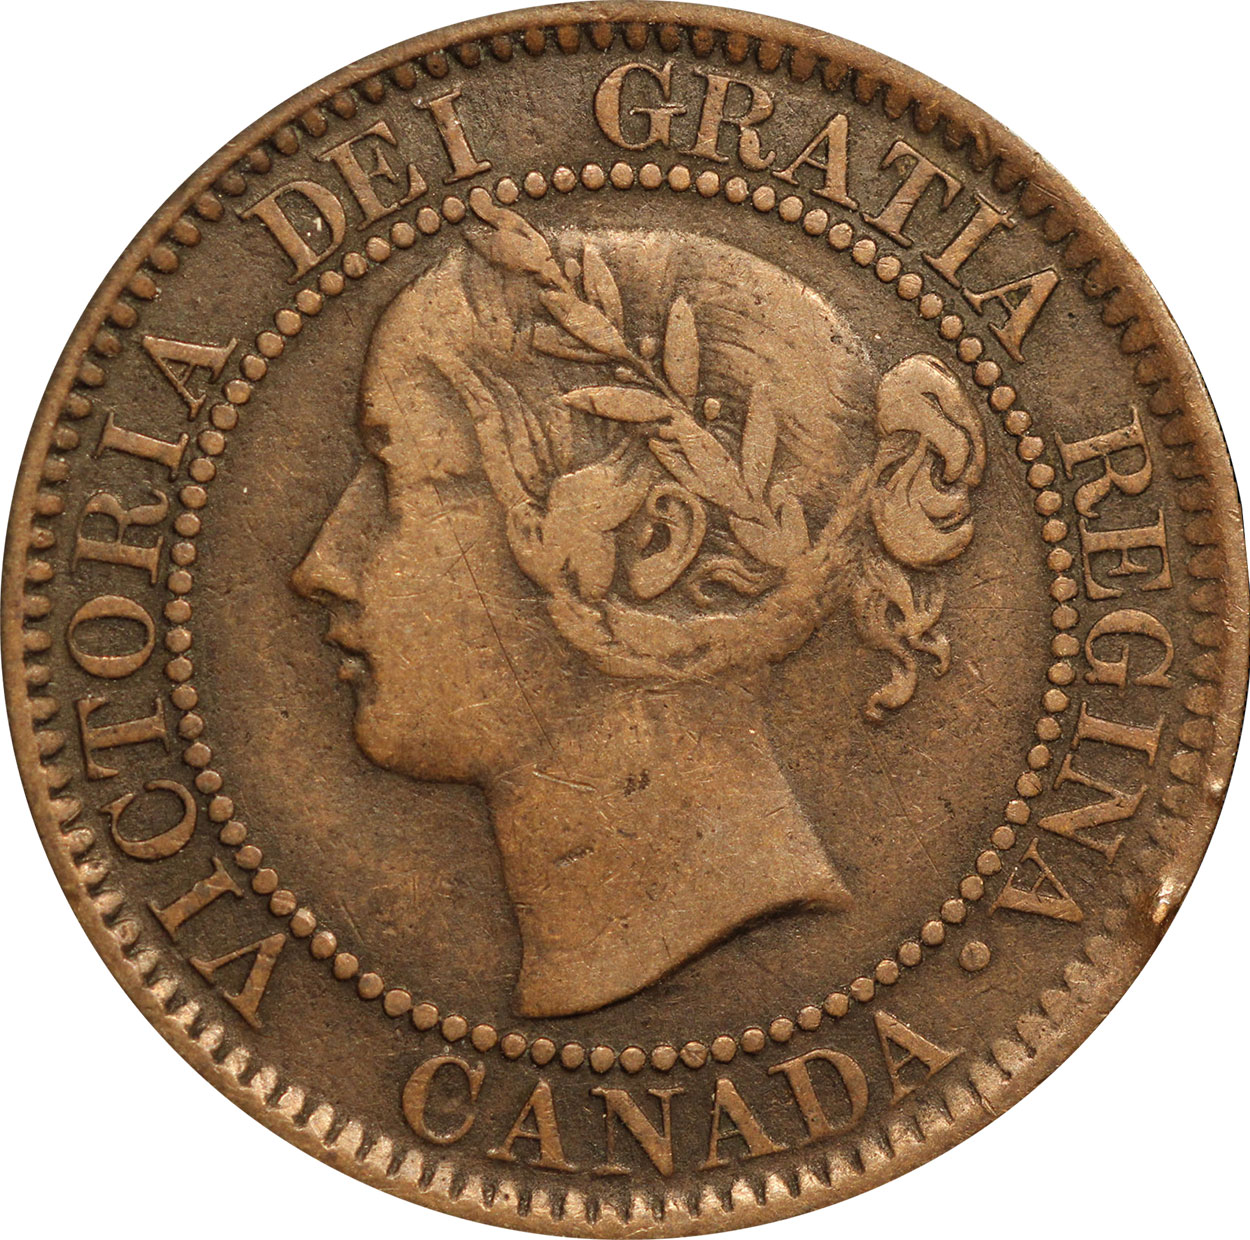 F-12 - 1 cent 1858 and 1859 - Victoria